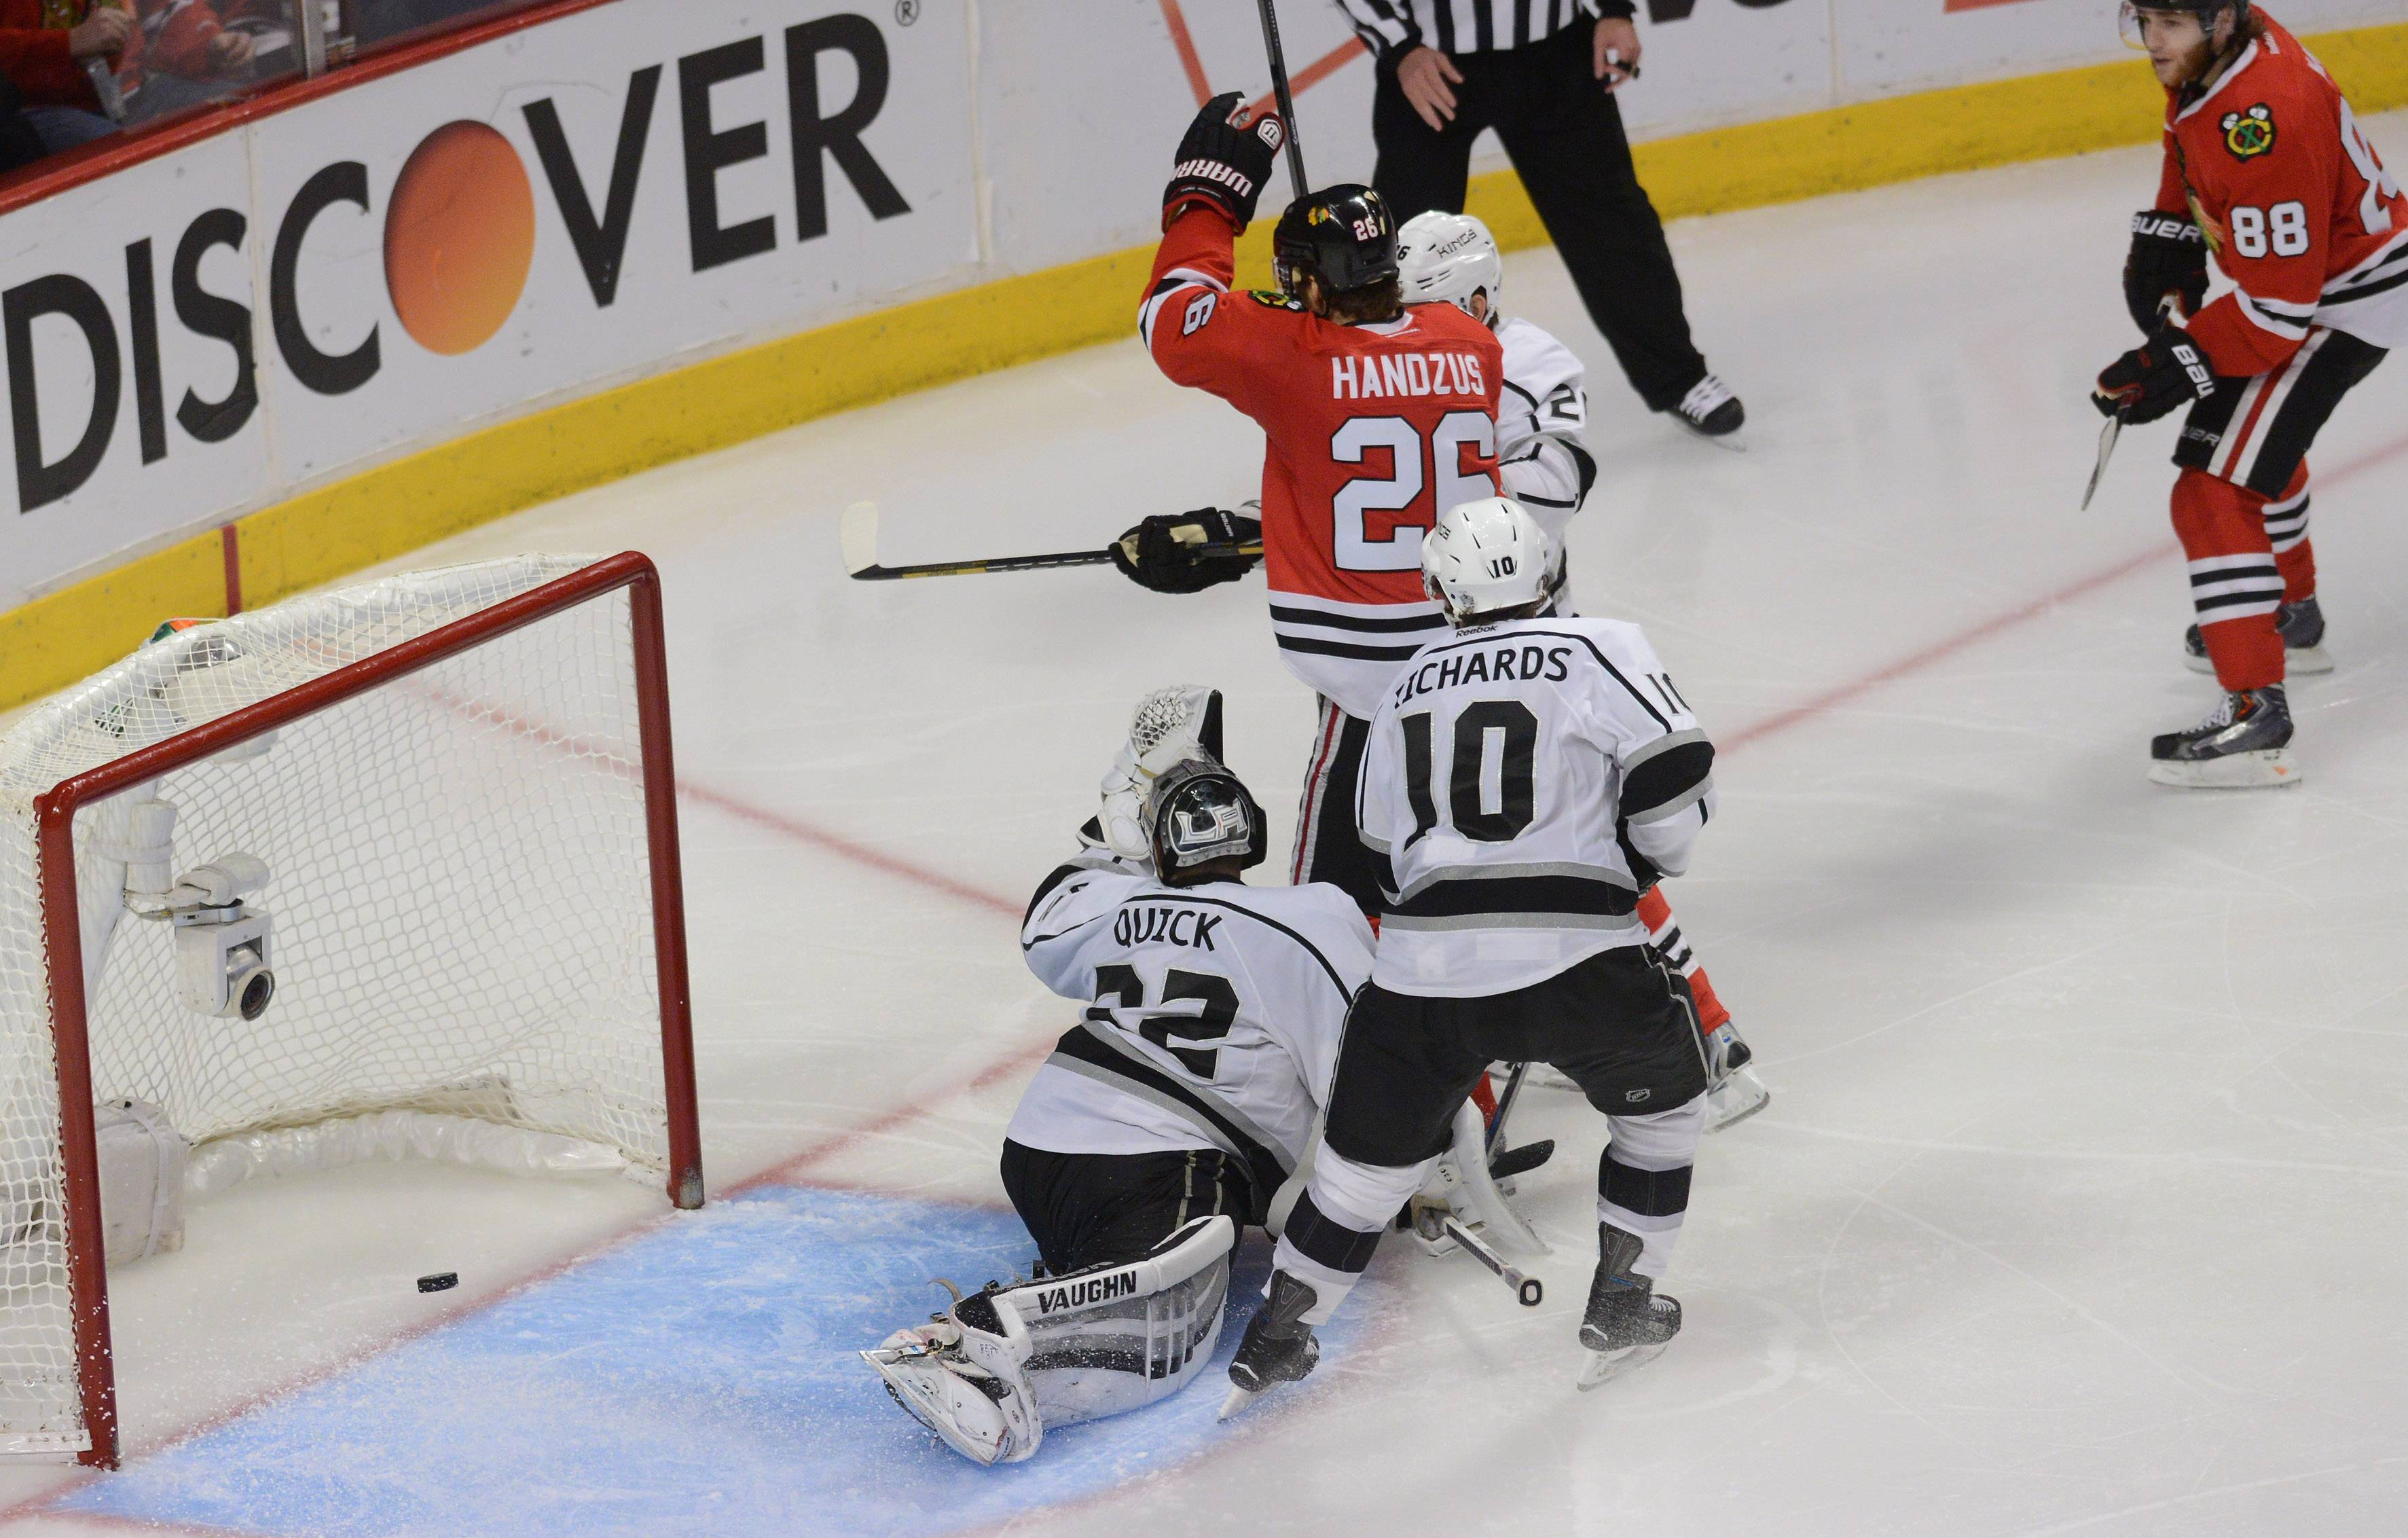 Blackhawks center Michal Handzus scores the game-winning goal in double overtime Wednesday night in Game 5 of the Western Conference finals at the United Center.